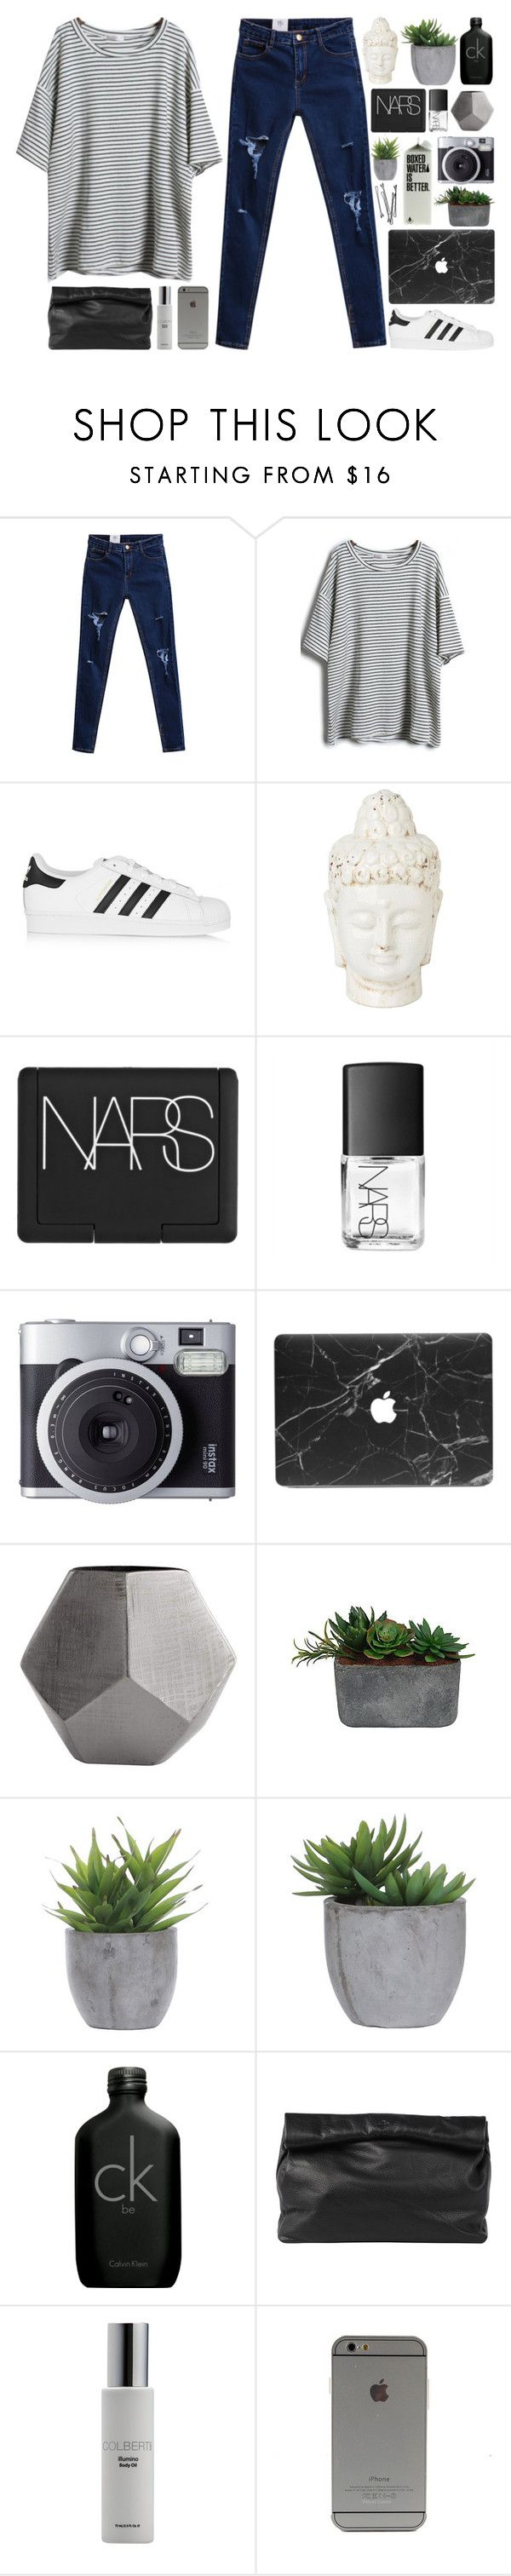 """""""= set challenge winners = // my dream wardrobe pt.14"""" by undercover-martyn ❤ liked on Polyvore featuring adidas Originals, NARS Cosmetics, Fujifilm, BOBBY, Cyan Design, Laura Ashley, Lux-Art Silks, Calvin Klein, Marie Turnor and Colbert MD"""